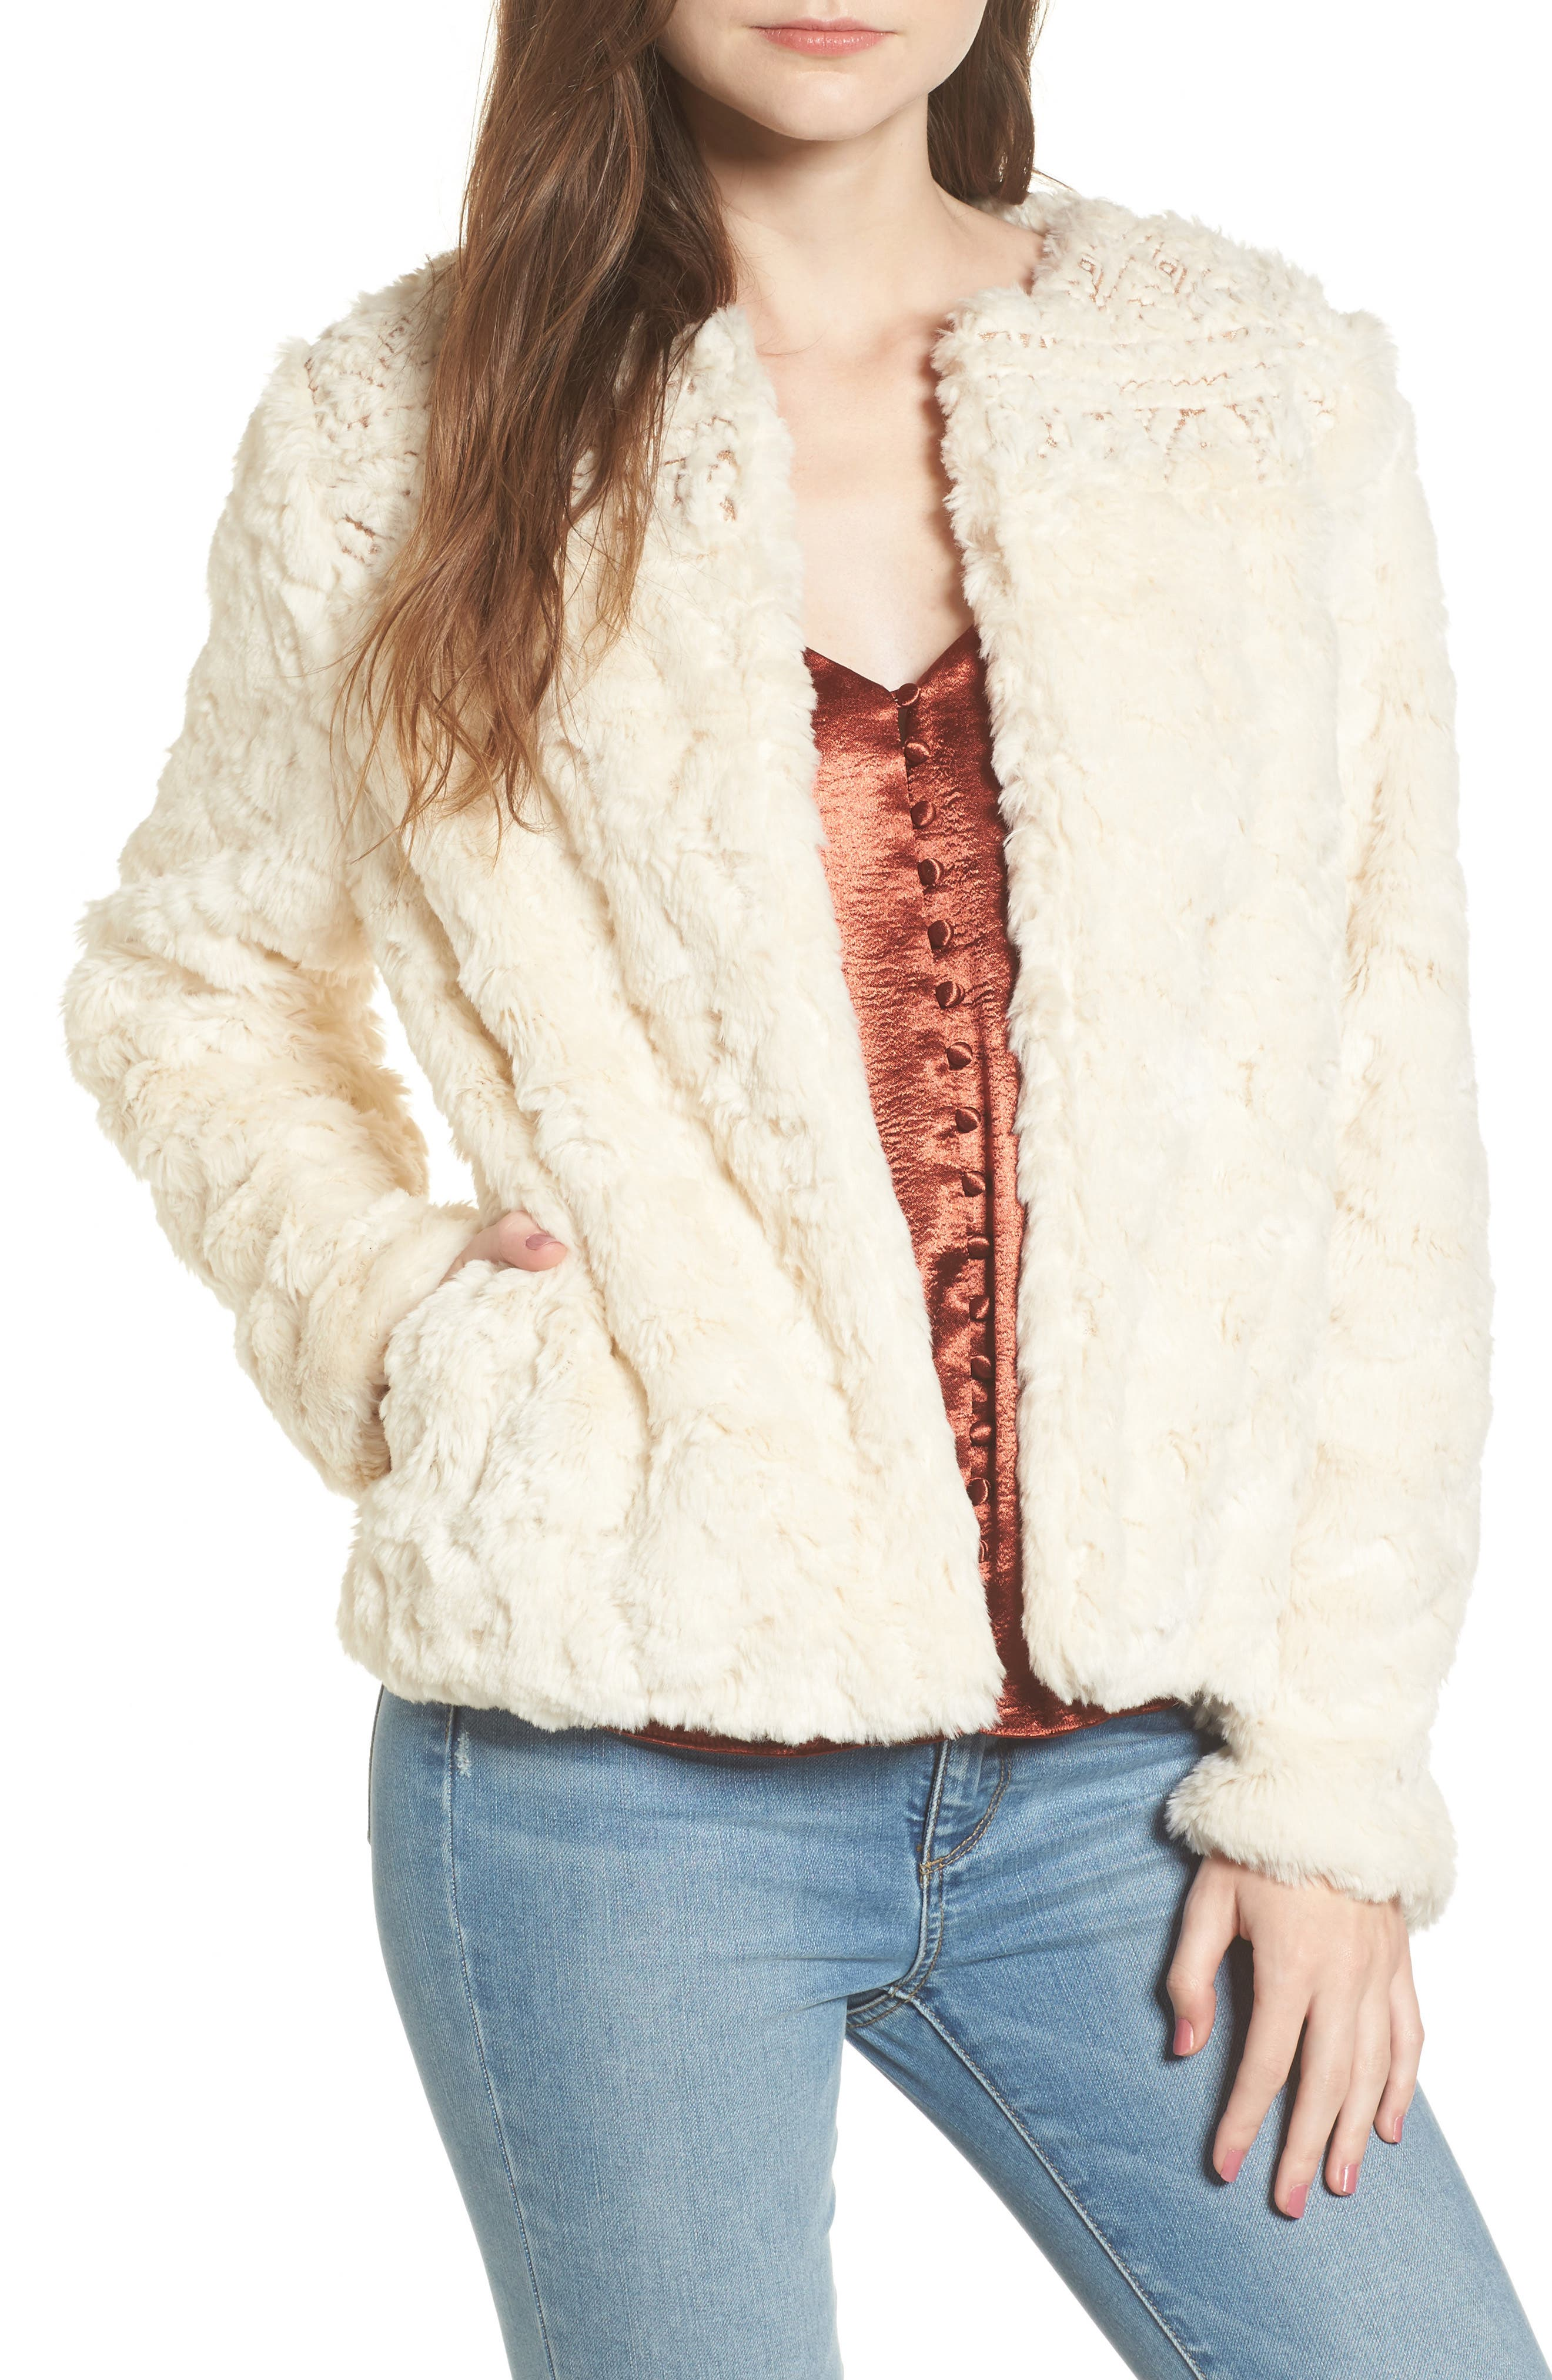 Metallic Embroidery Faux Fur Jacket,                         Main,                         color, Ivory